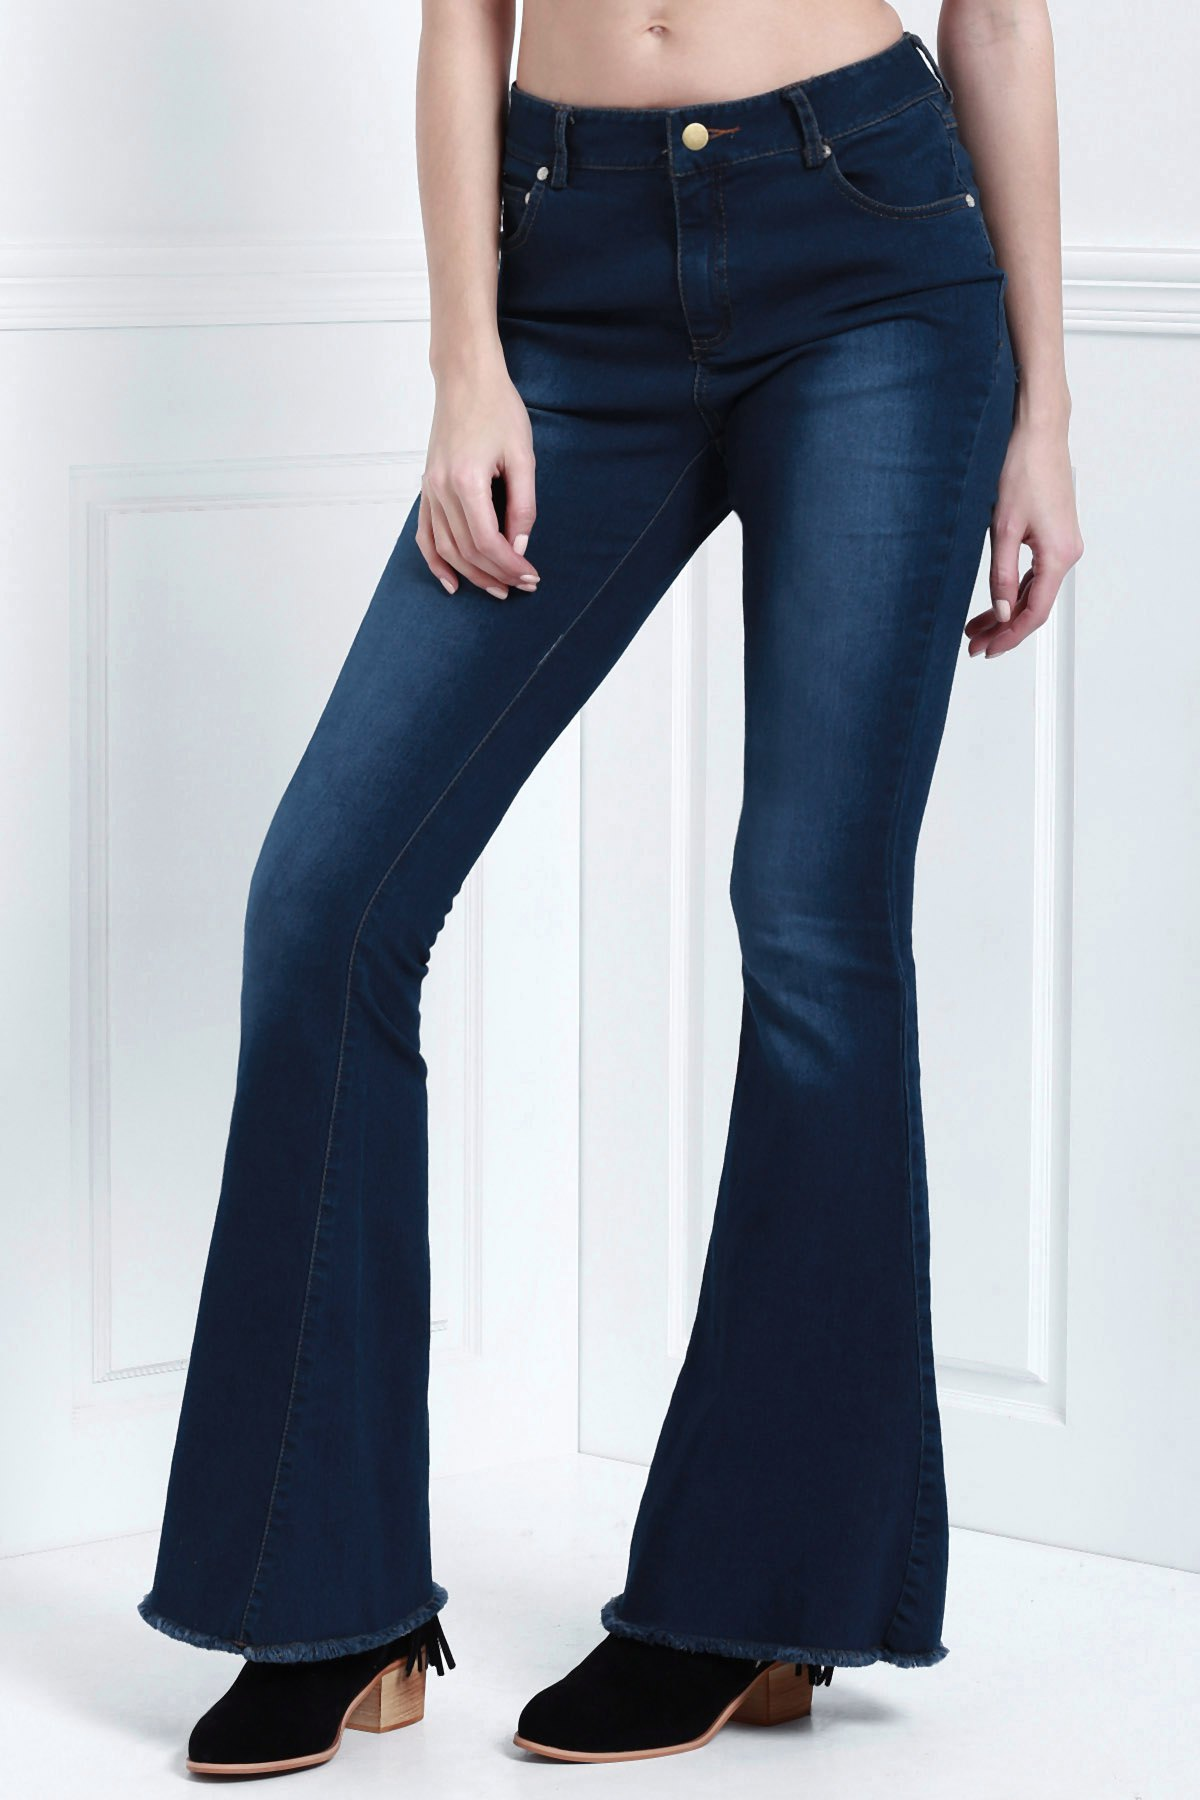 Best Skinny Flare Jeans